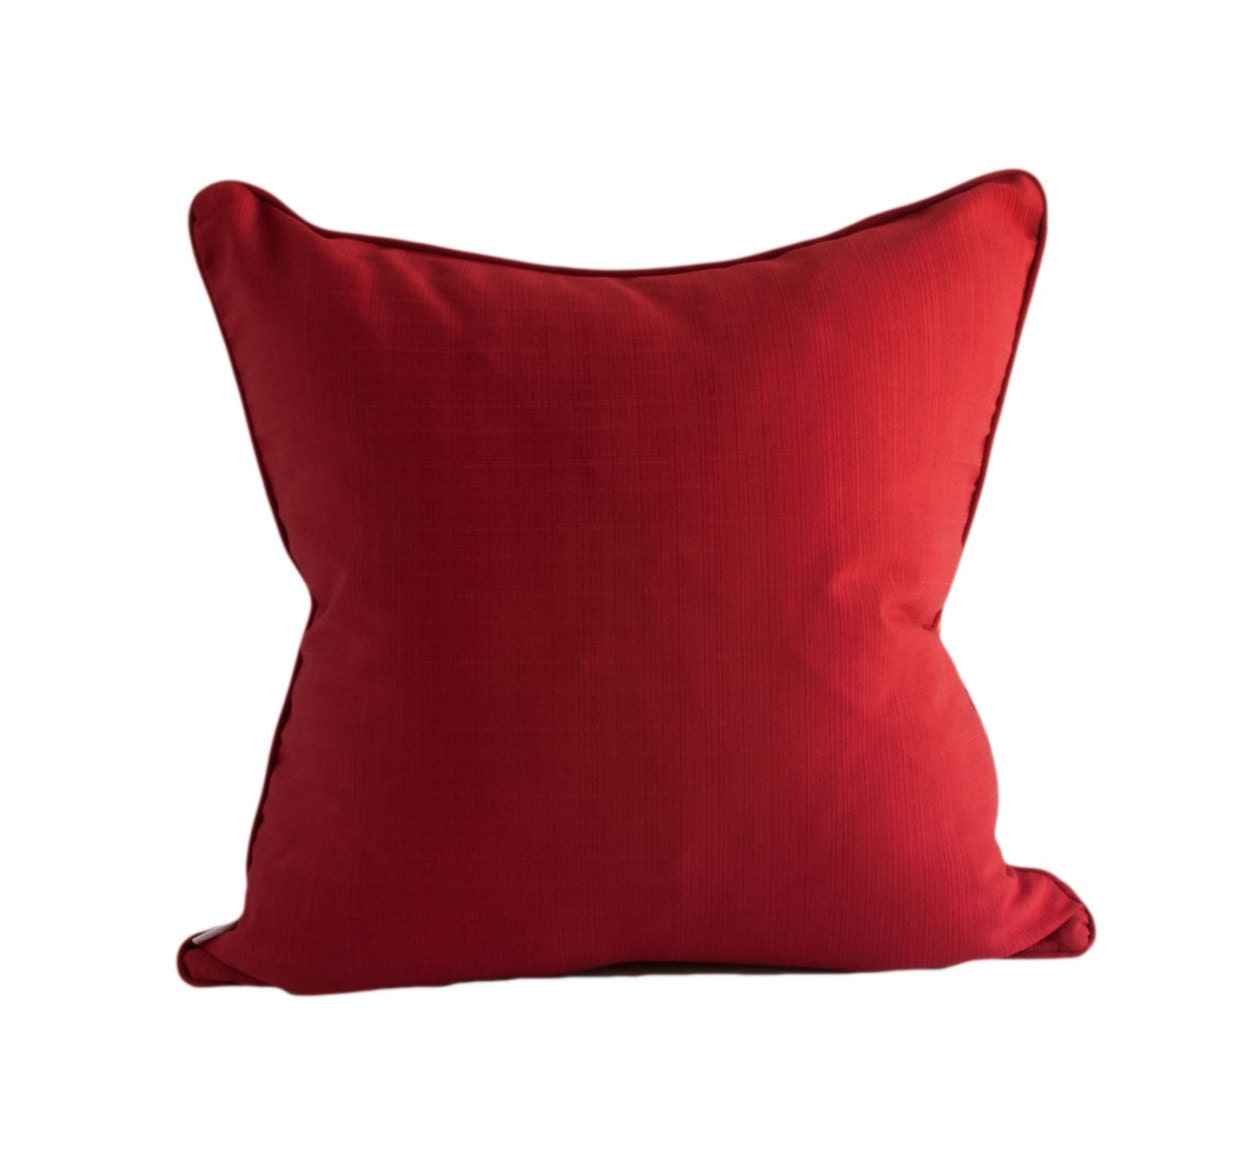 OUTDOOR PILLOW COVERS Red Pillow Cover Decorative Pillow